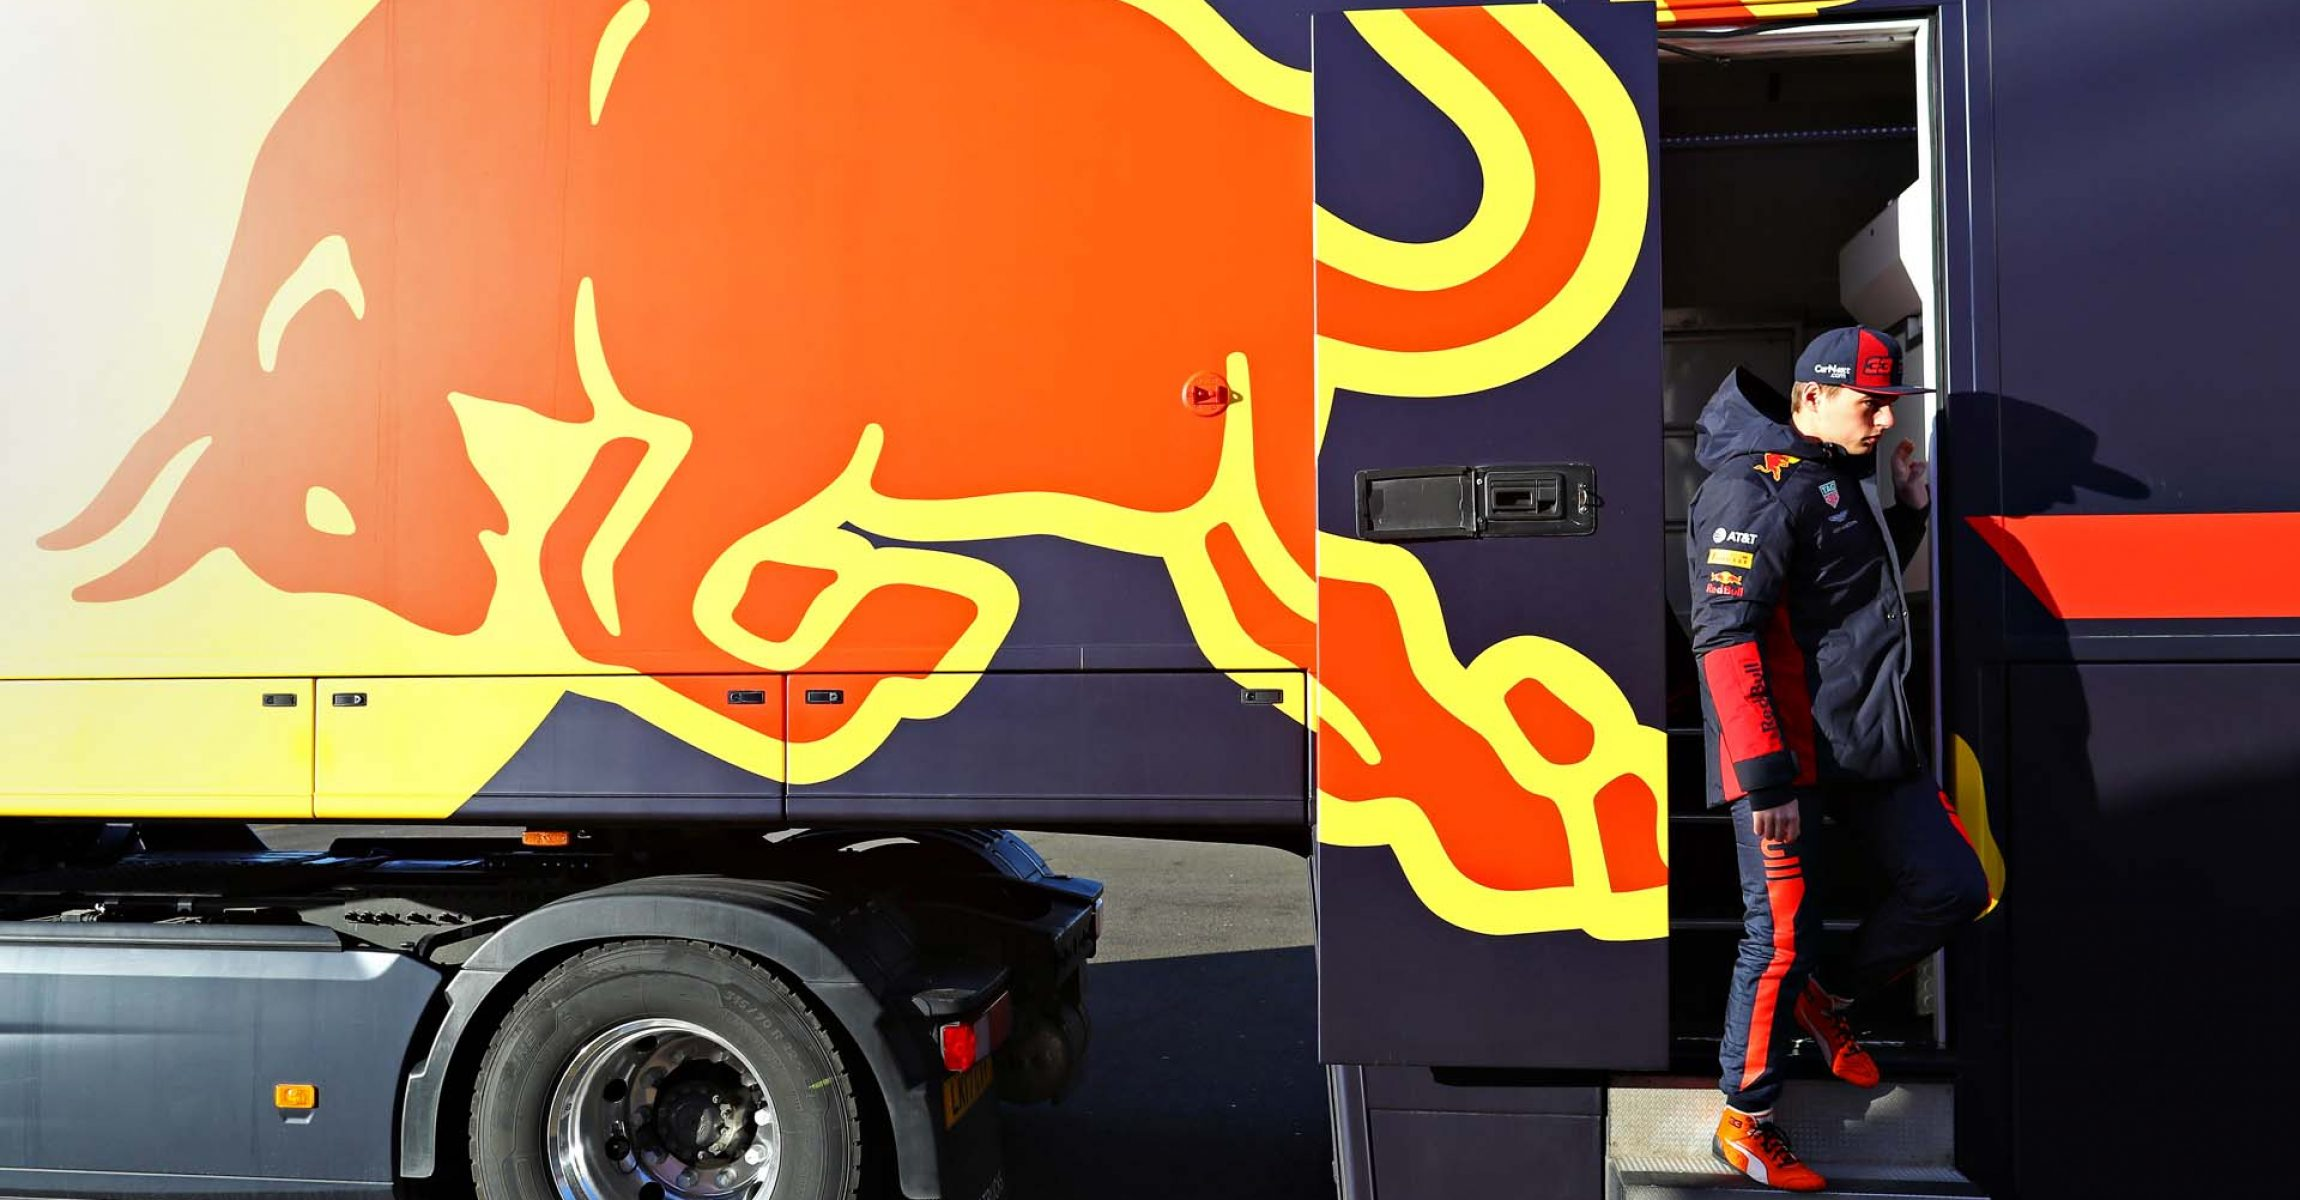 NORTHAMPTON, ENGLAND - FEBRUARY 12: Max Verstappen of Netherlands and Red Bull Racing prepares to drive during the Red Bull Racing RB16 launch at Silverstone Circuit on February 12, 2020 in Northampton, England. (Photo by Mark Thompson/Getty Images) // Getty Images / Red Bull Content Pool  // AP-233BPEVPD2111 // Usage for editorial use only //